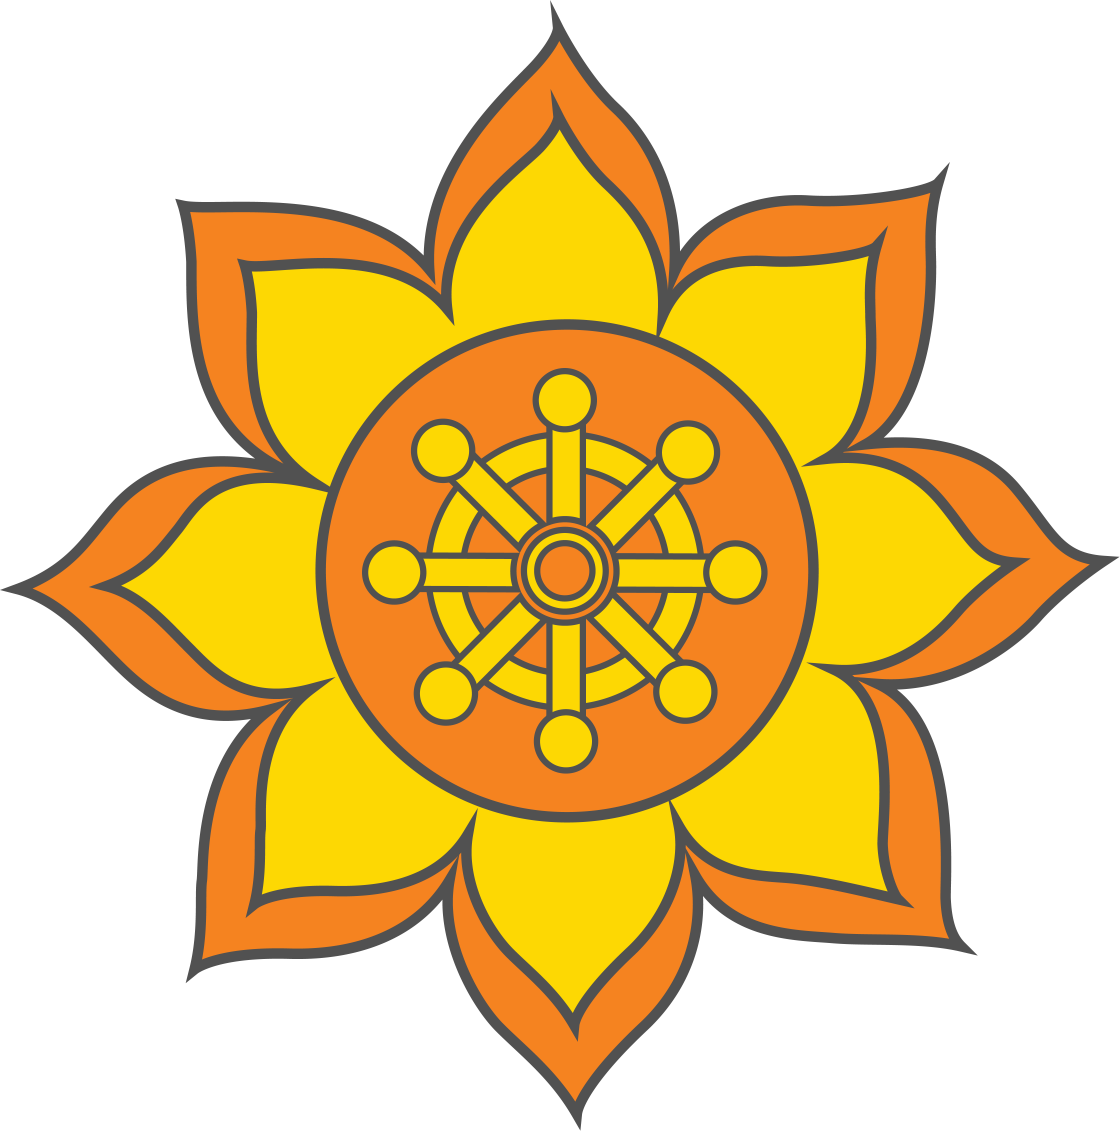 Lotus Happiness Logo With Transparent Background Lotus Happiness